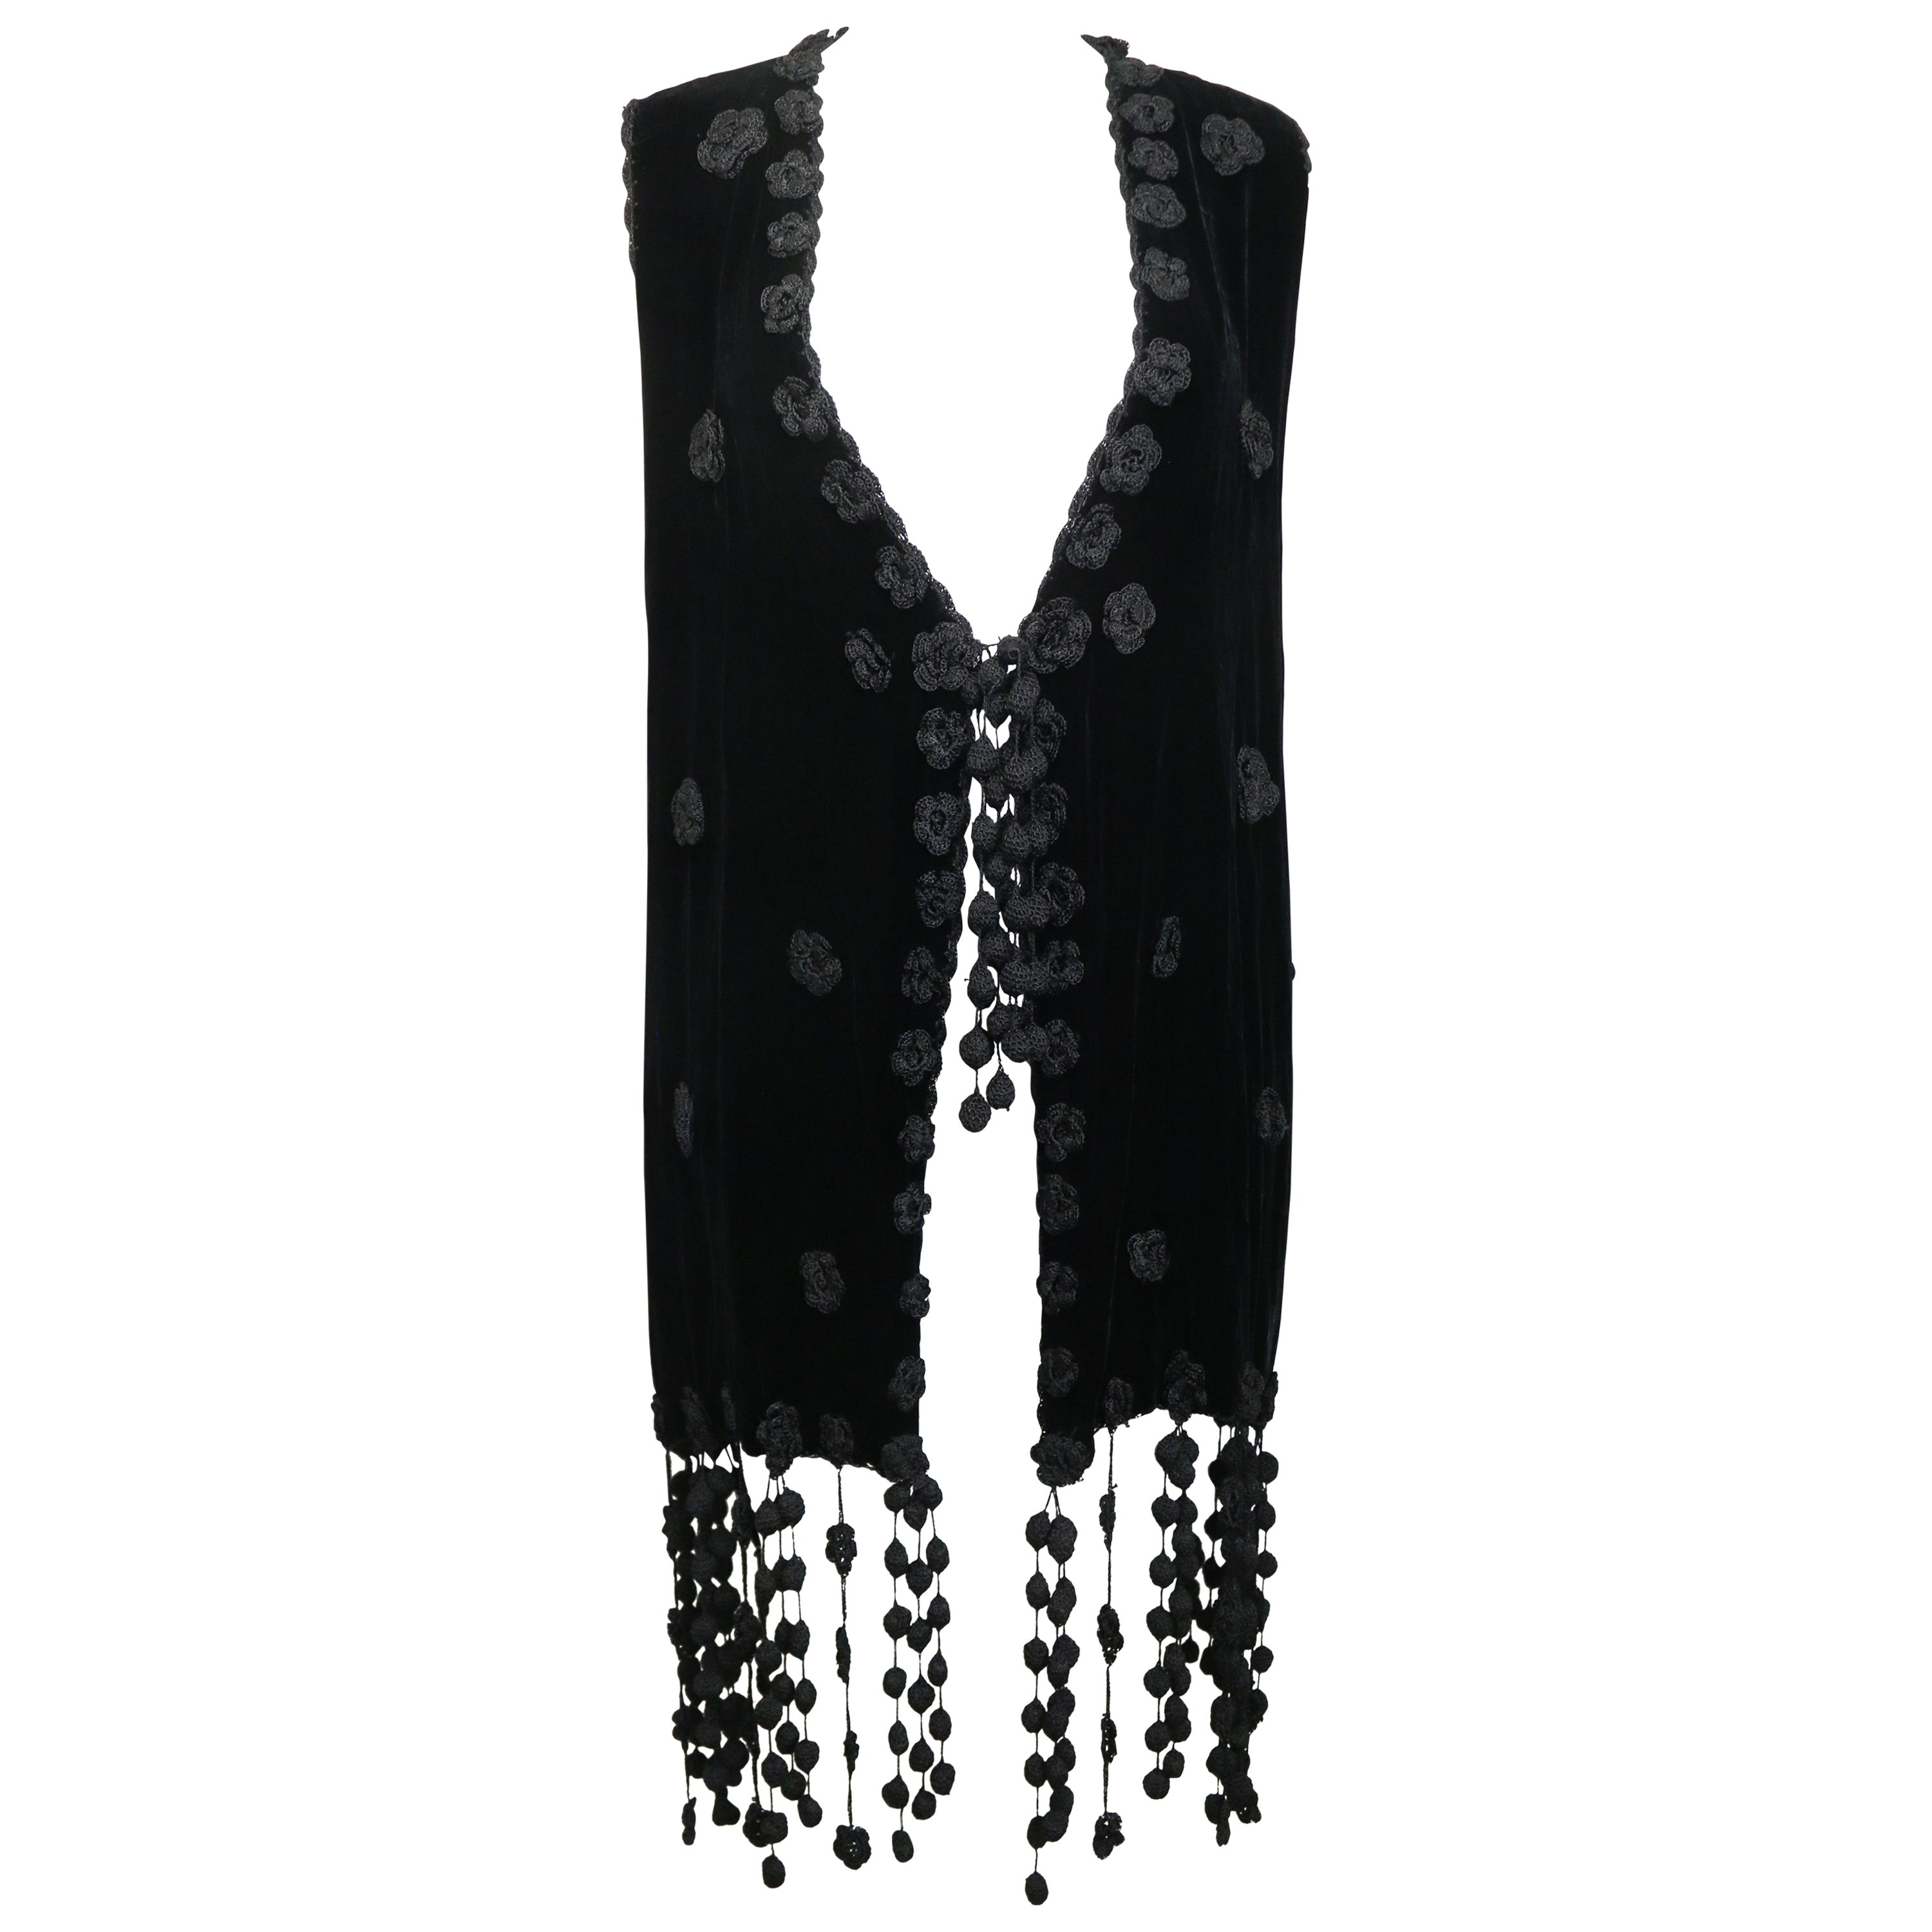 Cheap and Chic by Moschino Black Velvet and Knitted Flower Embroidered Long Vest